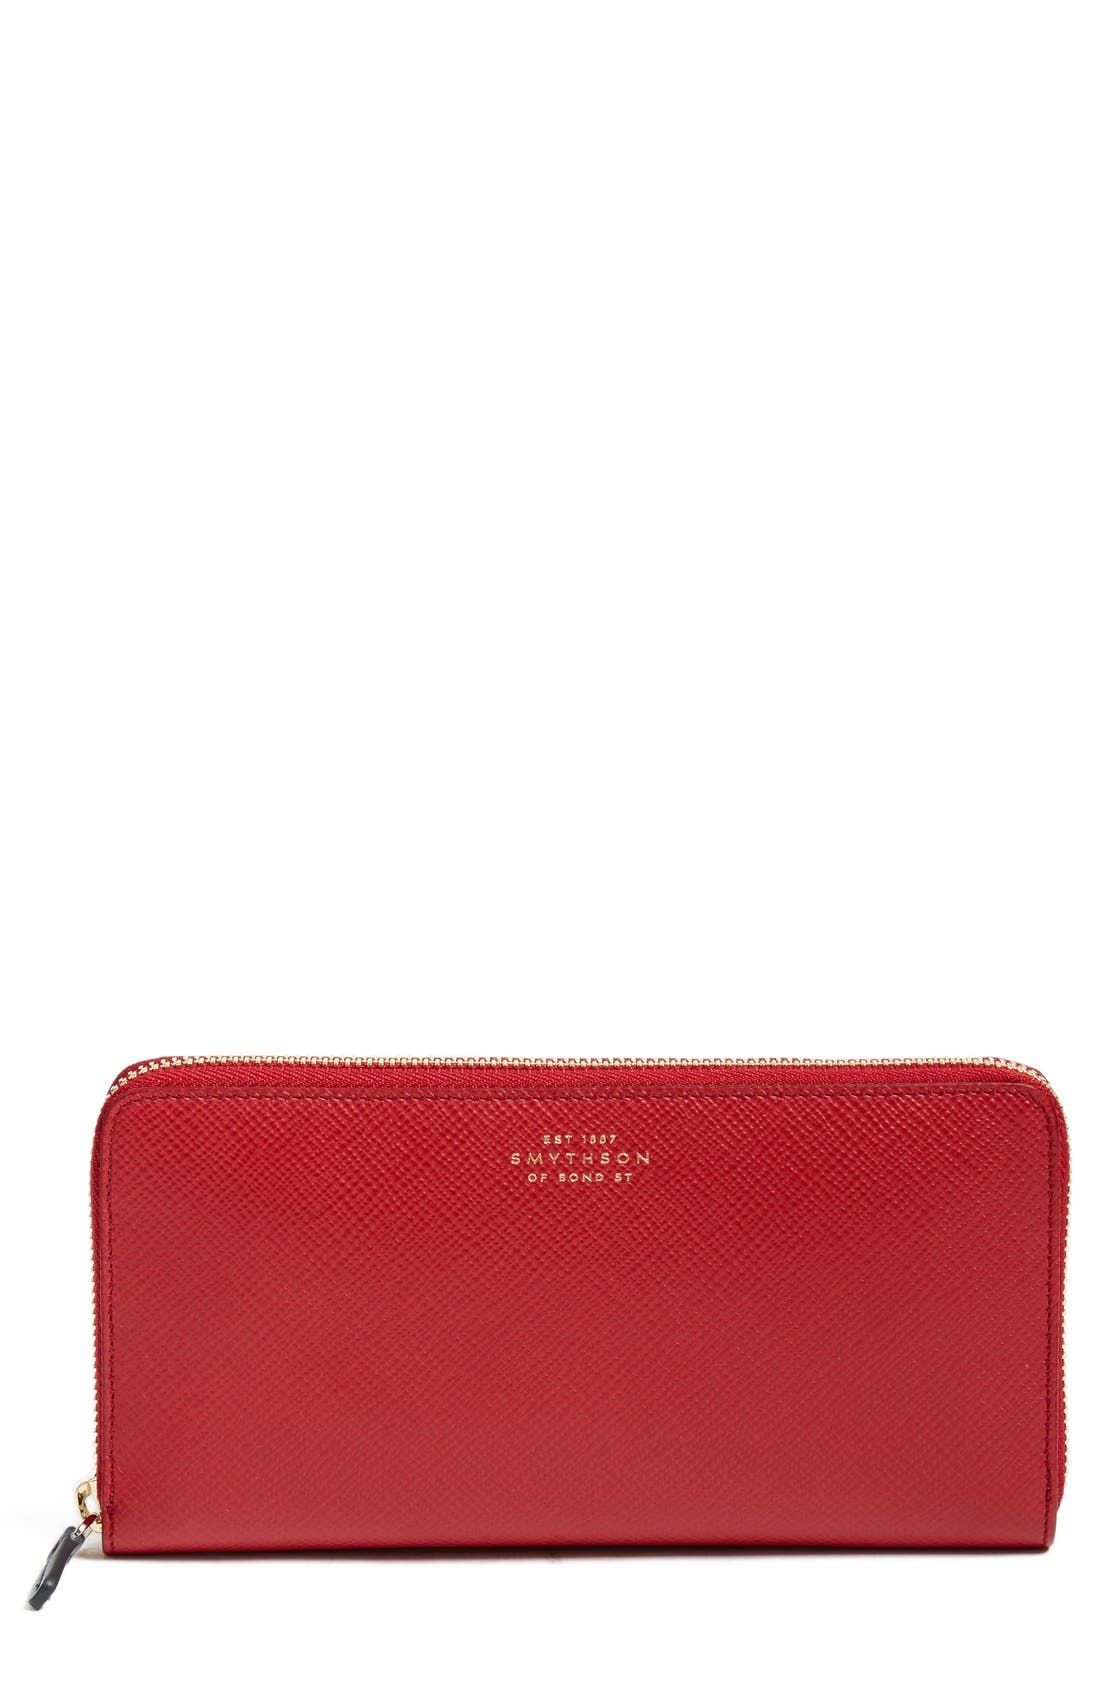 'Large Panama' Zip Around Wallet,                         Main,                         color, Red